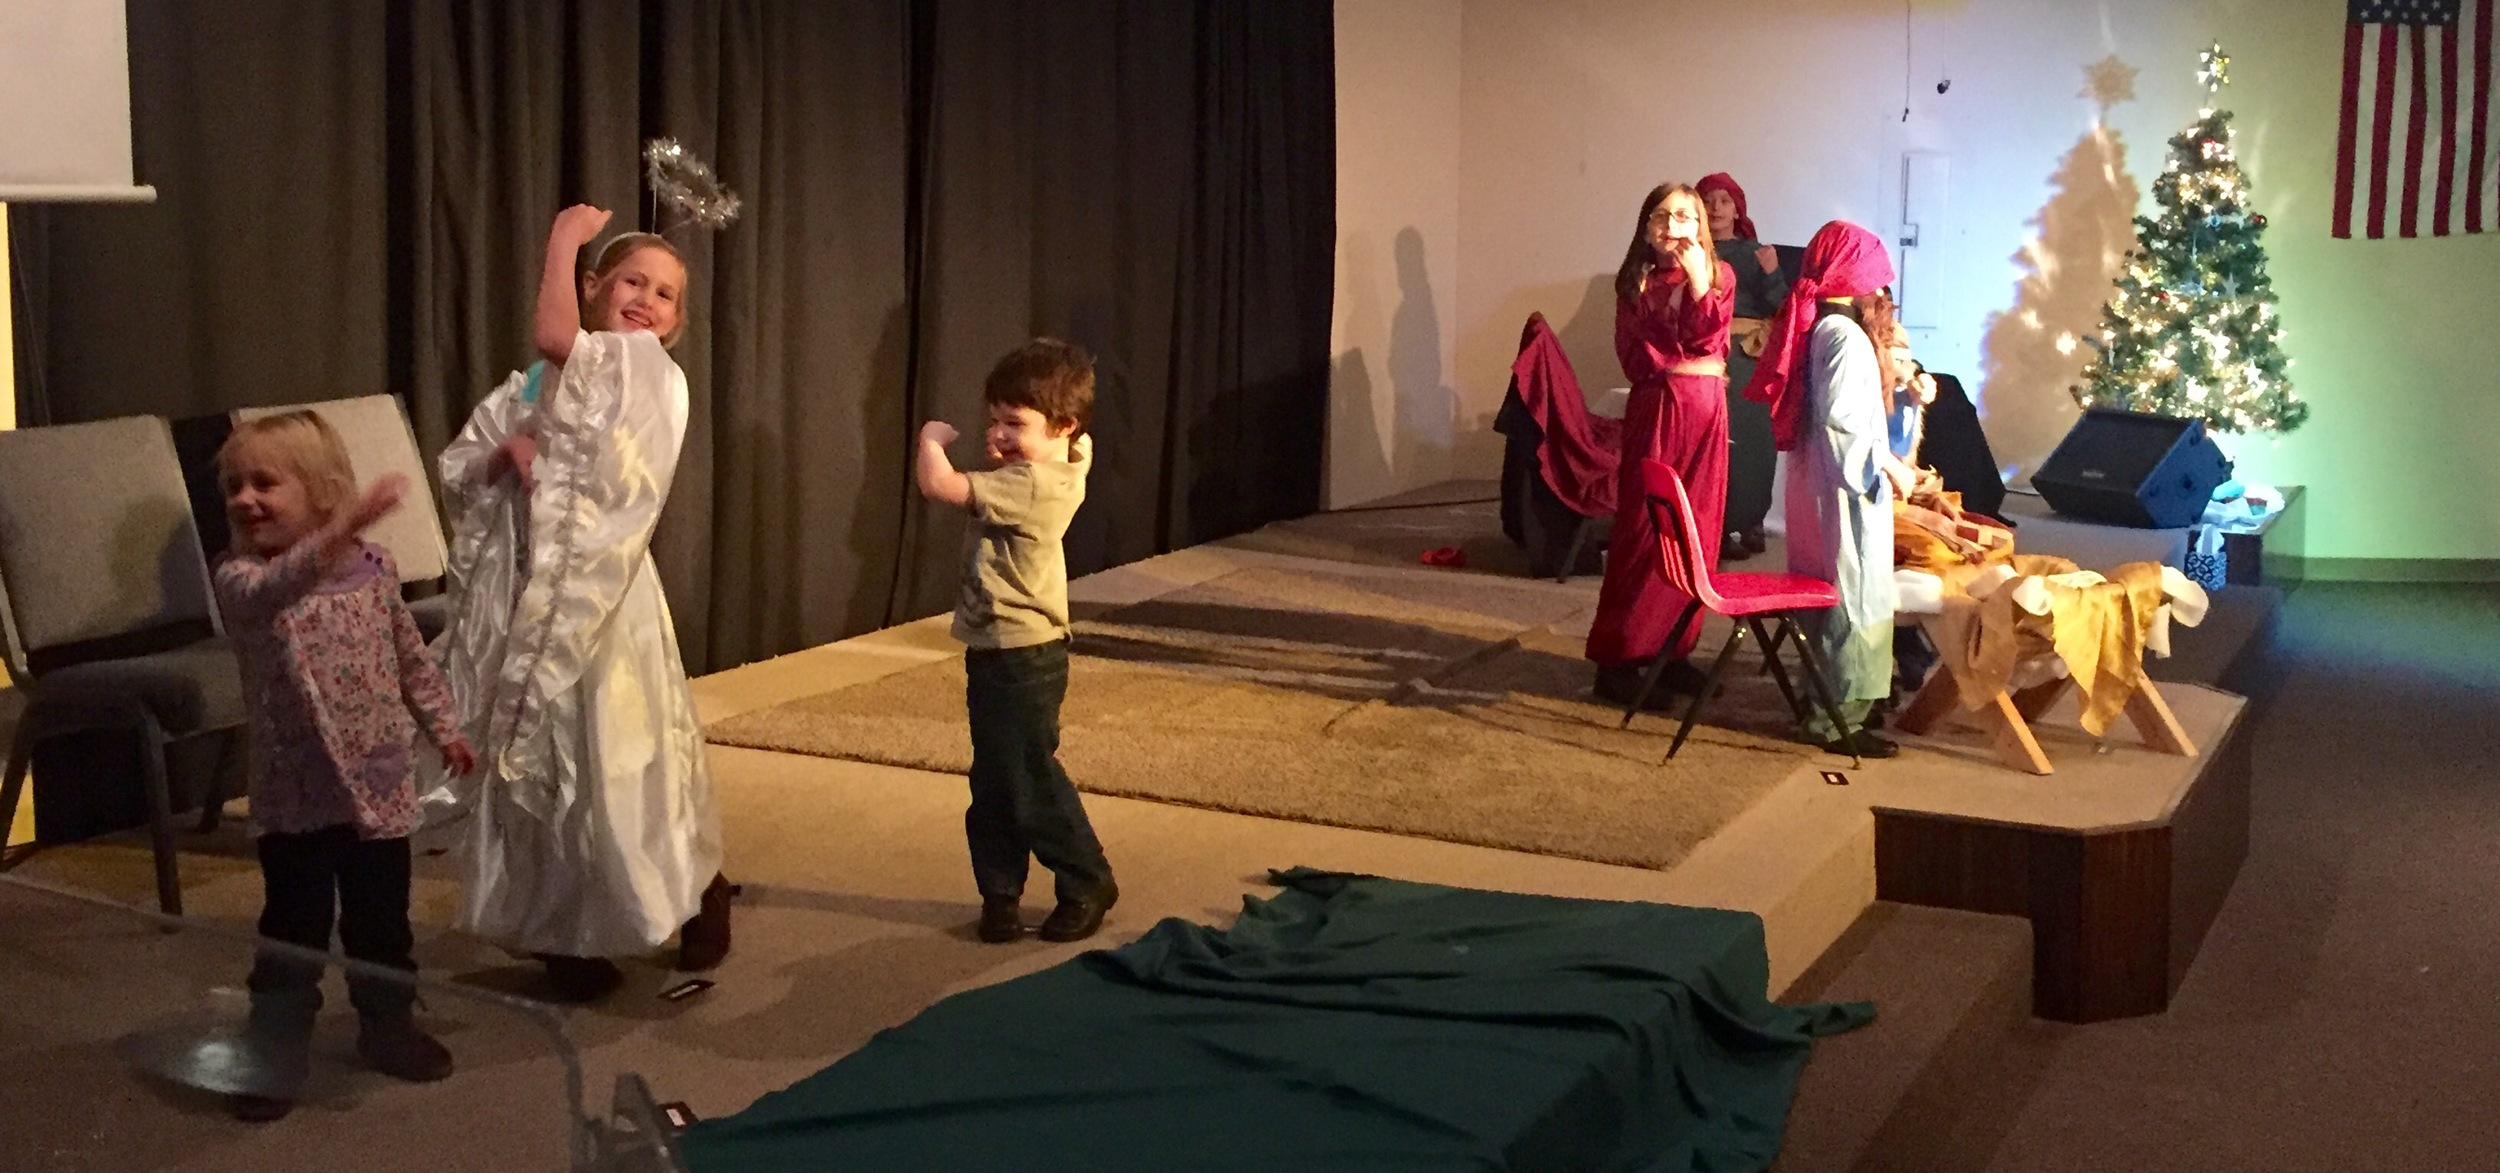 Dress Rehearsal for the children's Play